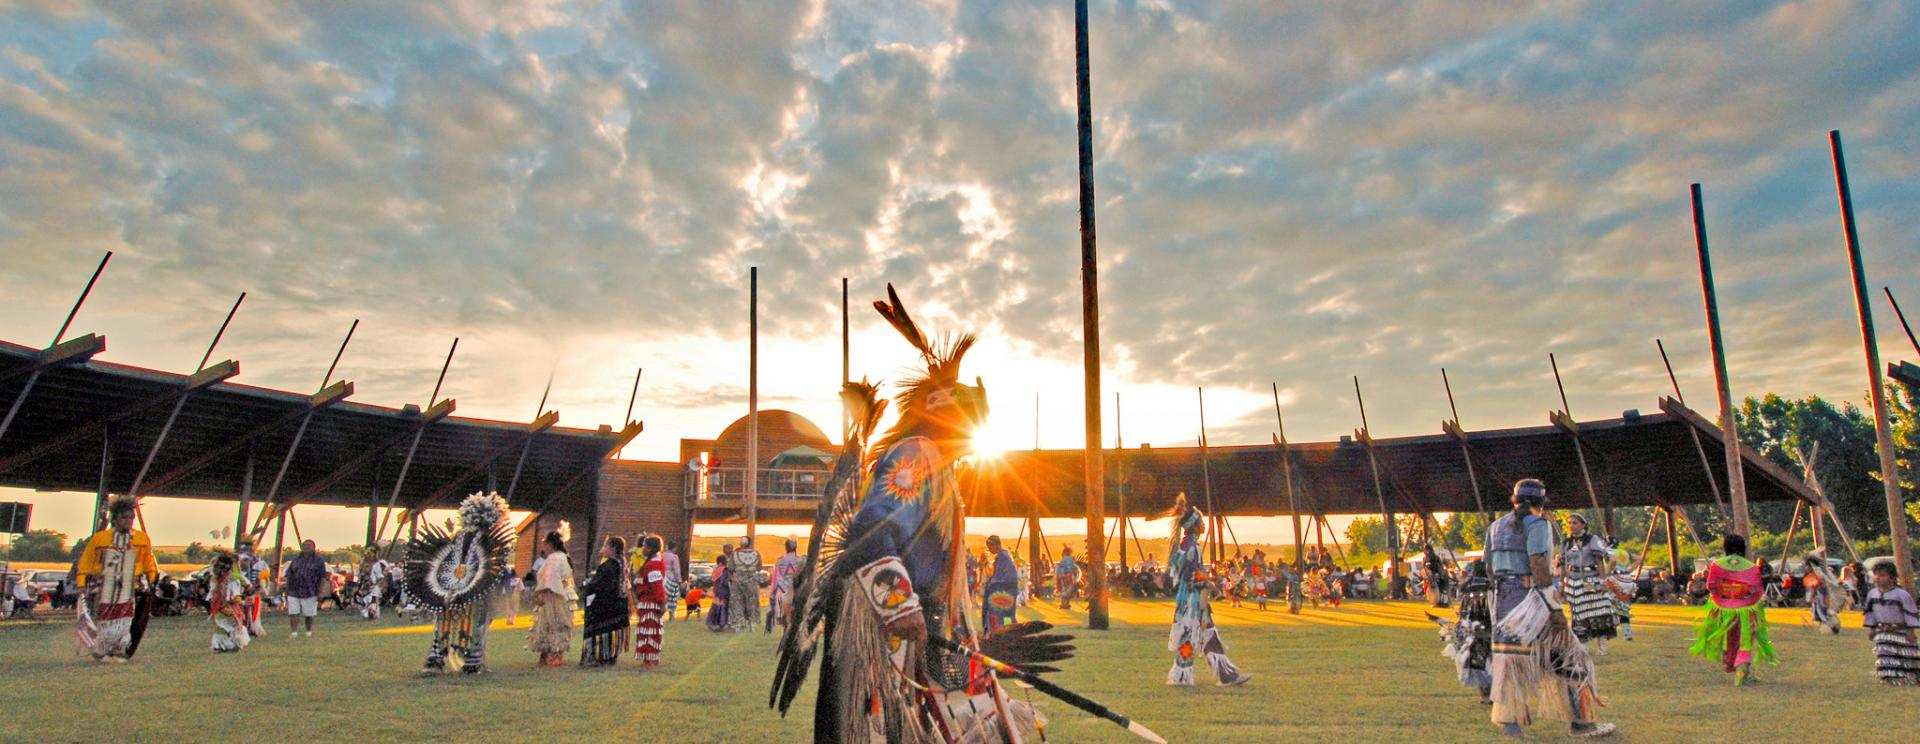 Black Hills Powwow - CANCELLED FOR 2020